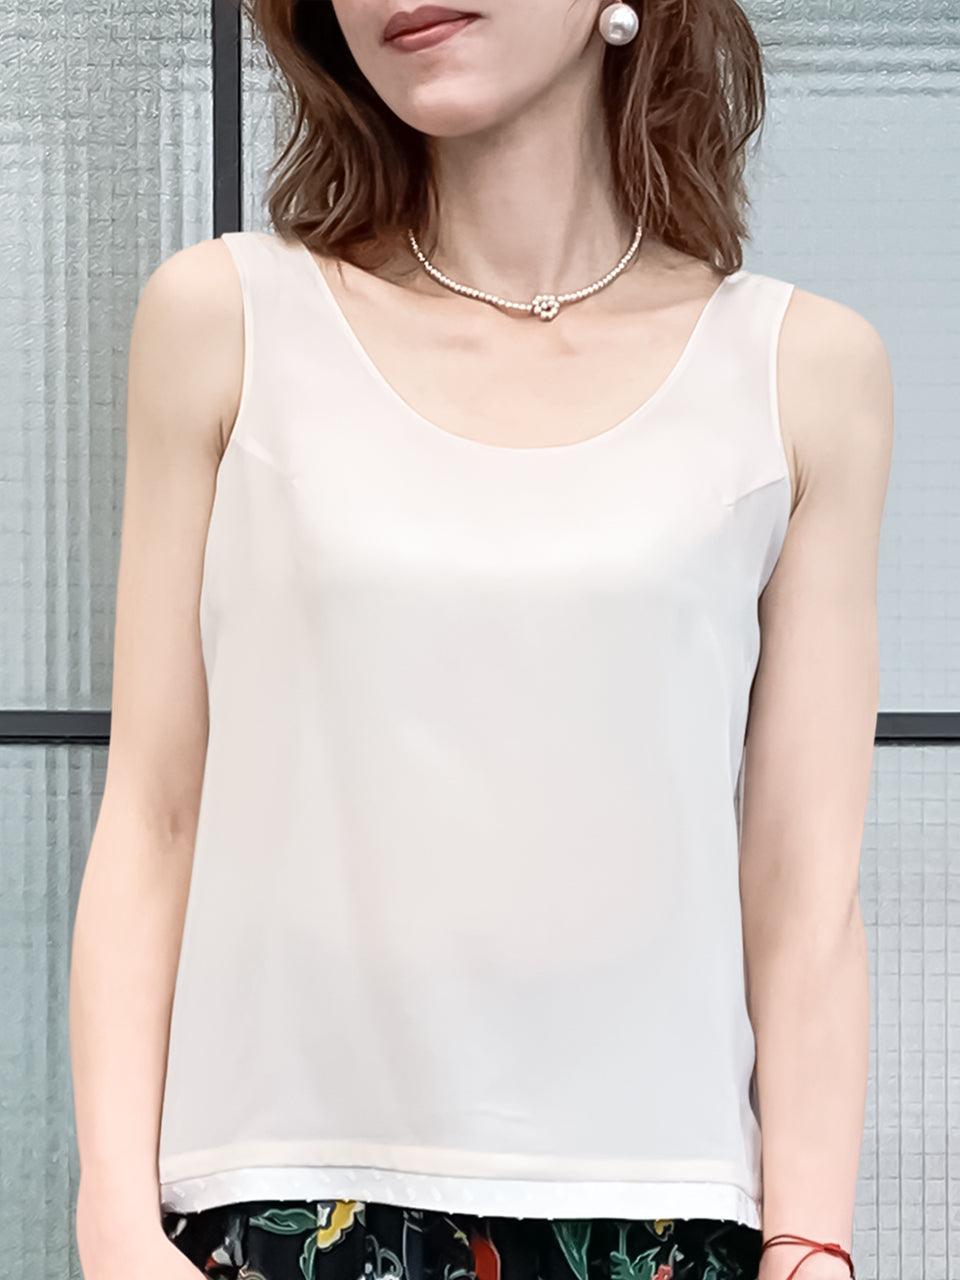 Intimate White Tie Back Sleeveless Silky Blouse